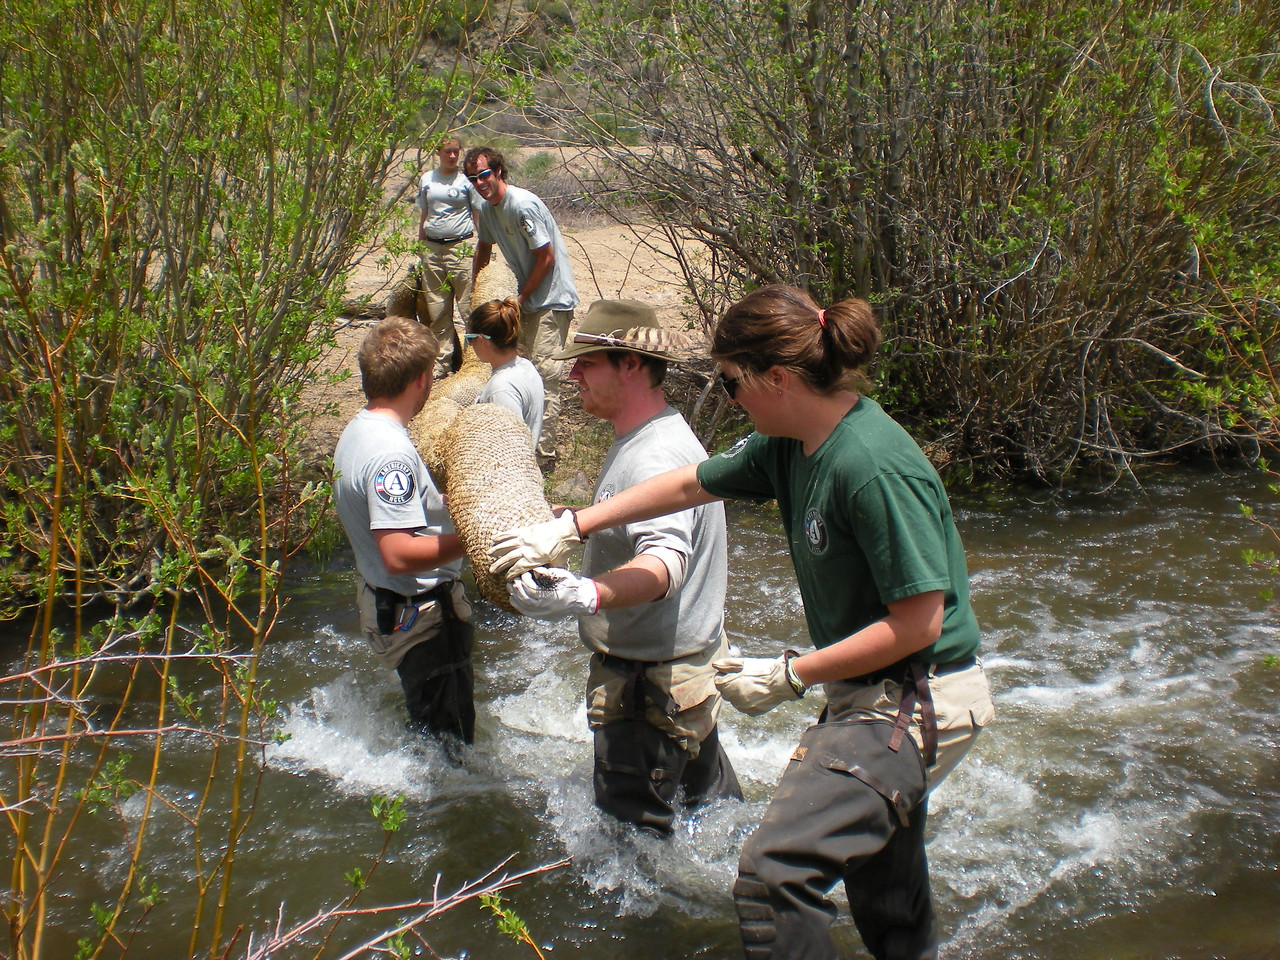 Sun 4 helps maintain waterways during round 4 of class 16 on San Luis Public Lands. AmeriCorps NCCC. Corporation for National and Community Service Photo.